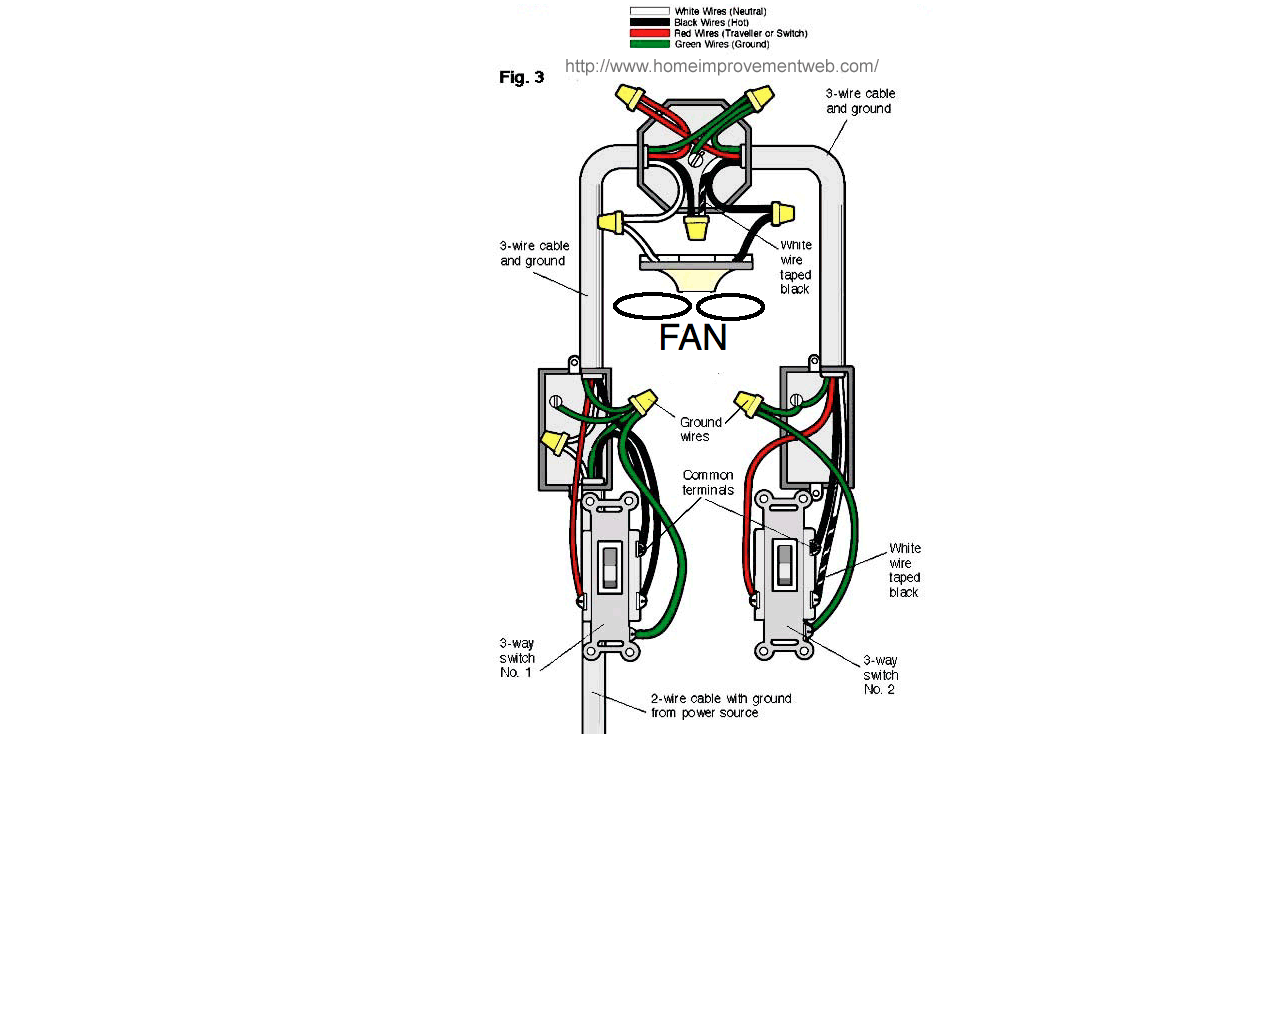 please give me a proper diagram for wiring a ceiling fan with light kit to 2 3